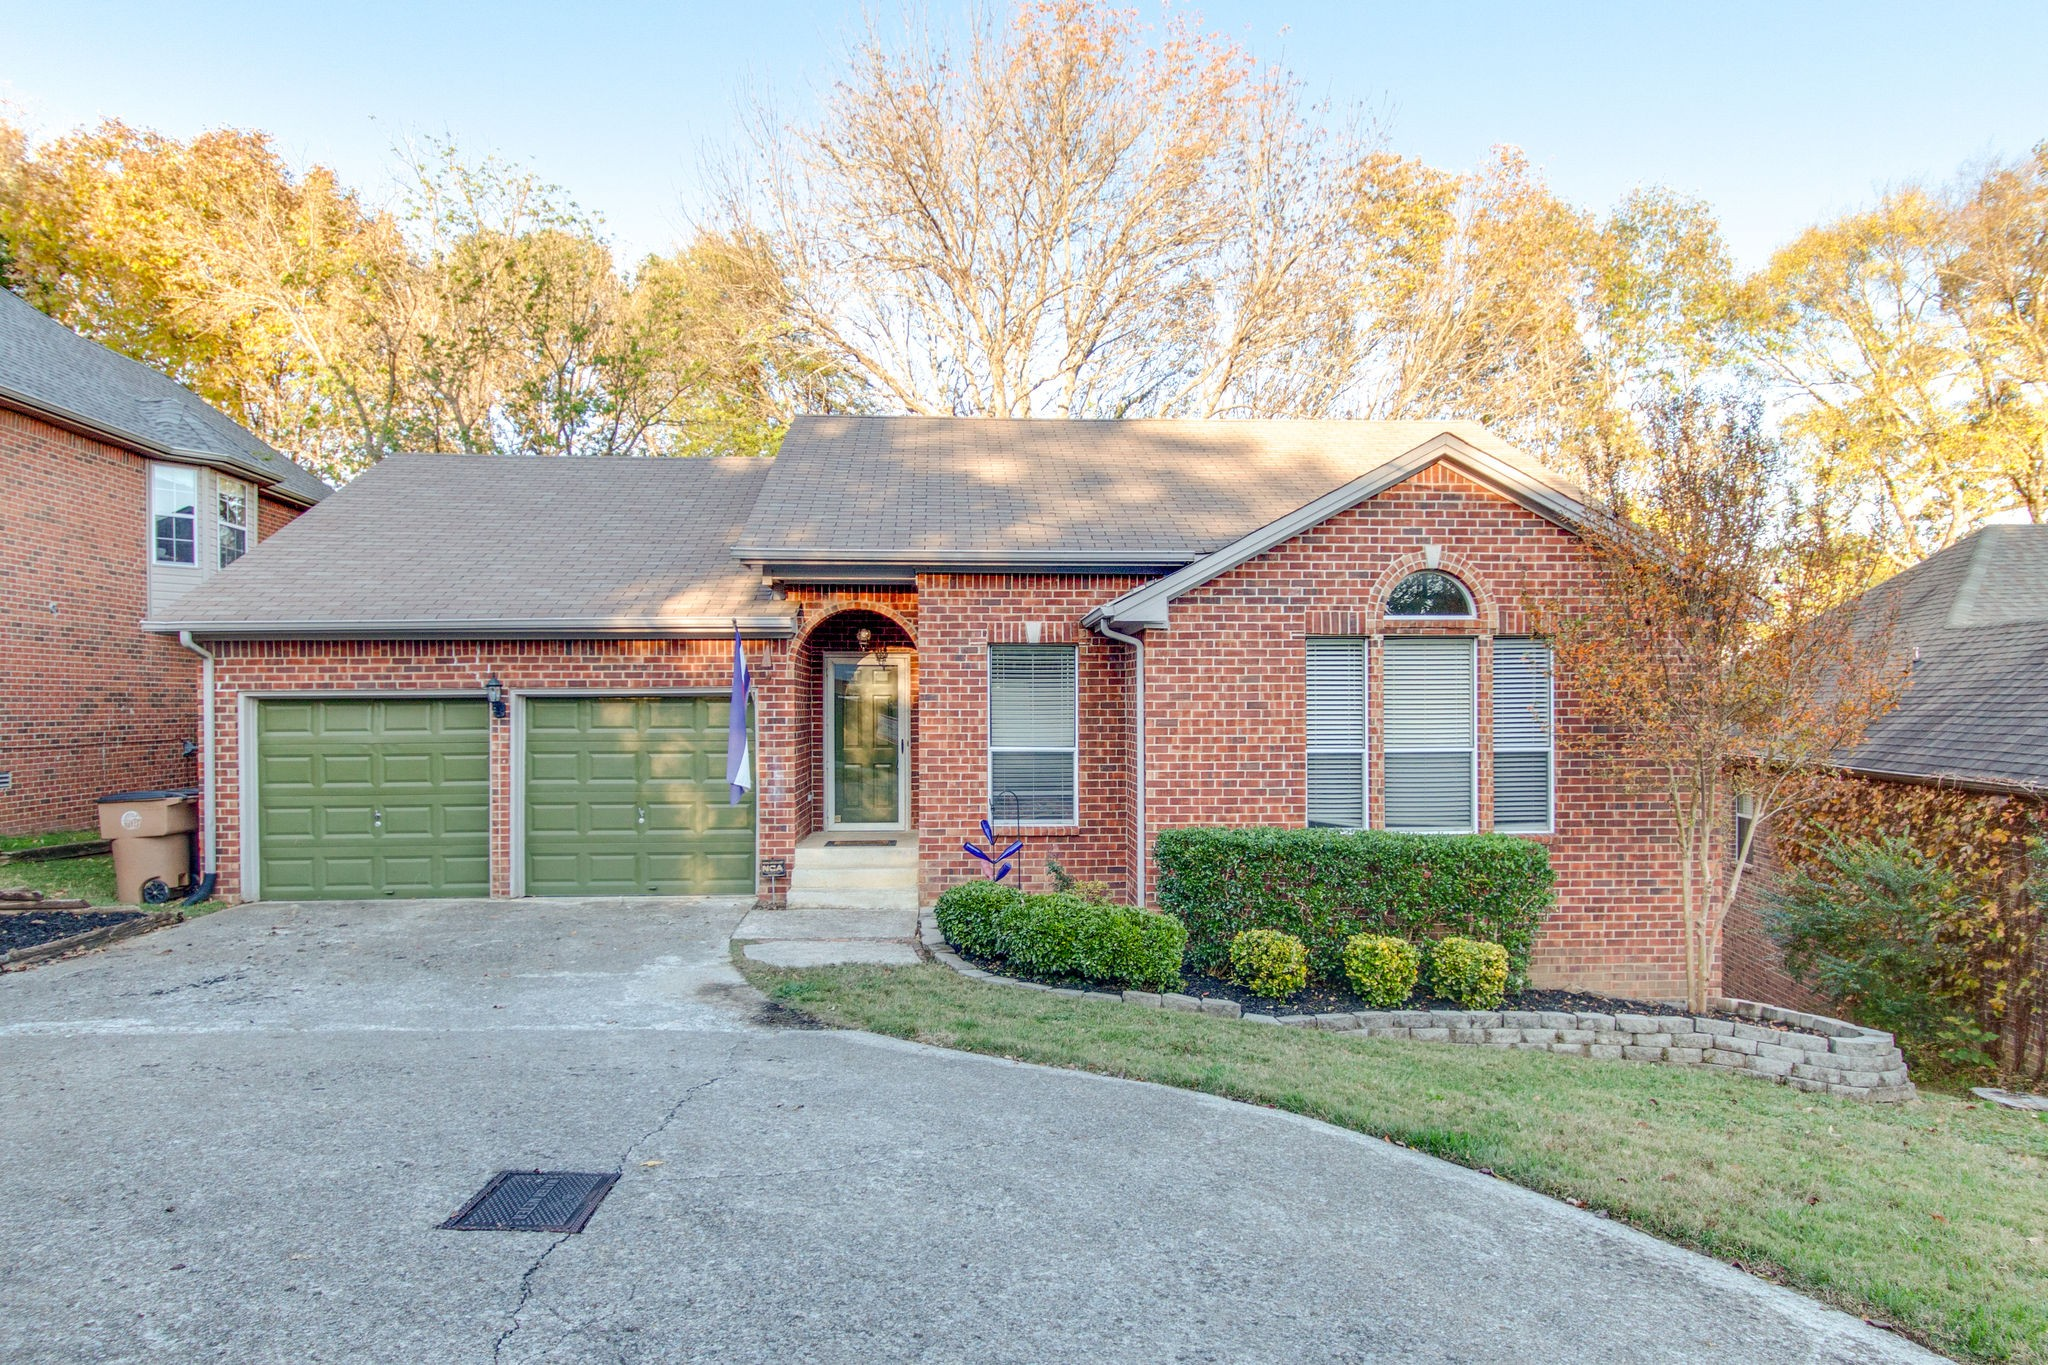 4920 Alexis Dr, Nashville-Antioch in Davidson County County, TN 37013 Home for Sale